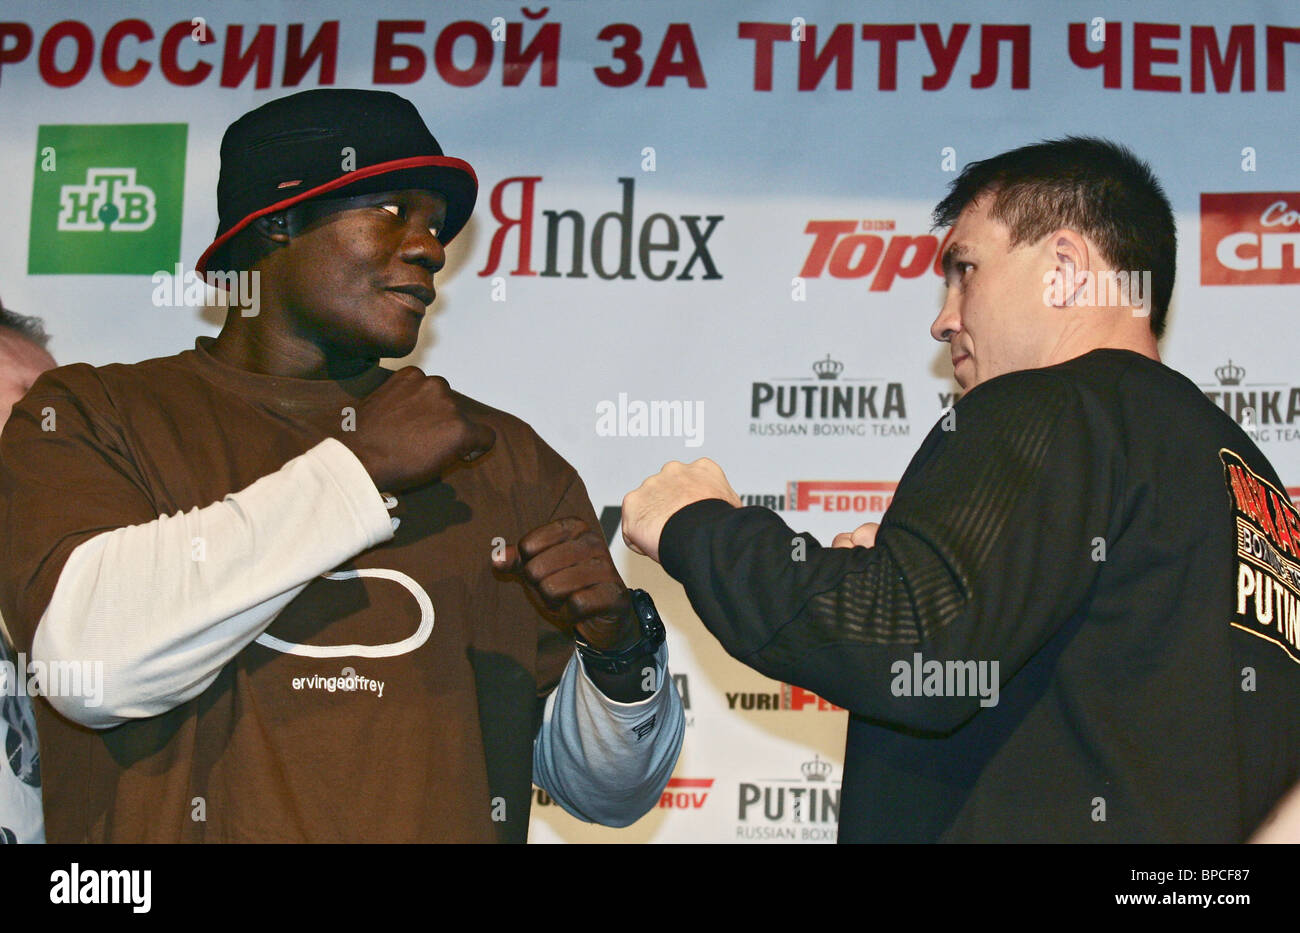 Boxers Oleg Maskaev and Peter Okhello give press conference in Moscow - Stock Image